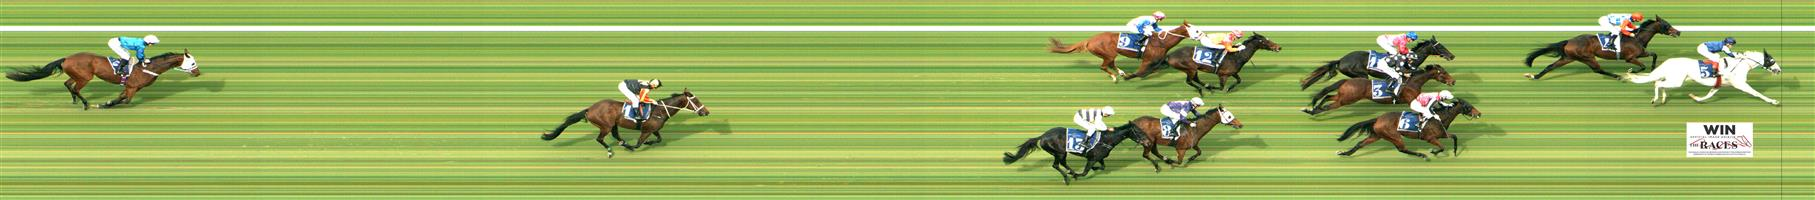 MORPHETTVILLE Race 3 No. 3 Chequered Flag @ $16 - watch price   Result : Non Qualifier - 4th at SP $21.00  MORPHETTVILLE Race 3 No. 4 Sopressa @ $10 - watch price   Result : Non Qualifier - 2nd at SP $14.00.  MORPHETTVILLE Race 3 No. 12 Cedar Grande @ $15 - watch price   Result : Non Qualifier - Unplaced at SP $20.00.  MORPHETTVILLE Race 3 No. 13 Future Score @ $5 (1.25 UNITS WIN)   Result : Non Qualifier - Unplaced at SP $8.50     IMAGE NOT AVAILABLE   DOOMBEN Race 8 No. 12 Kenedna @ $9 - watch price   Result : Non Qualifier - 1st at SP $10.00, Best Tote $11.40, Betfair $12.06.